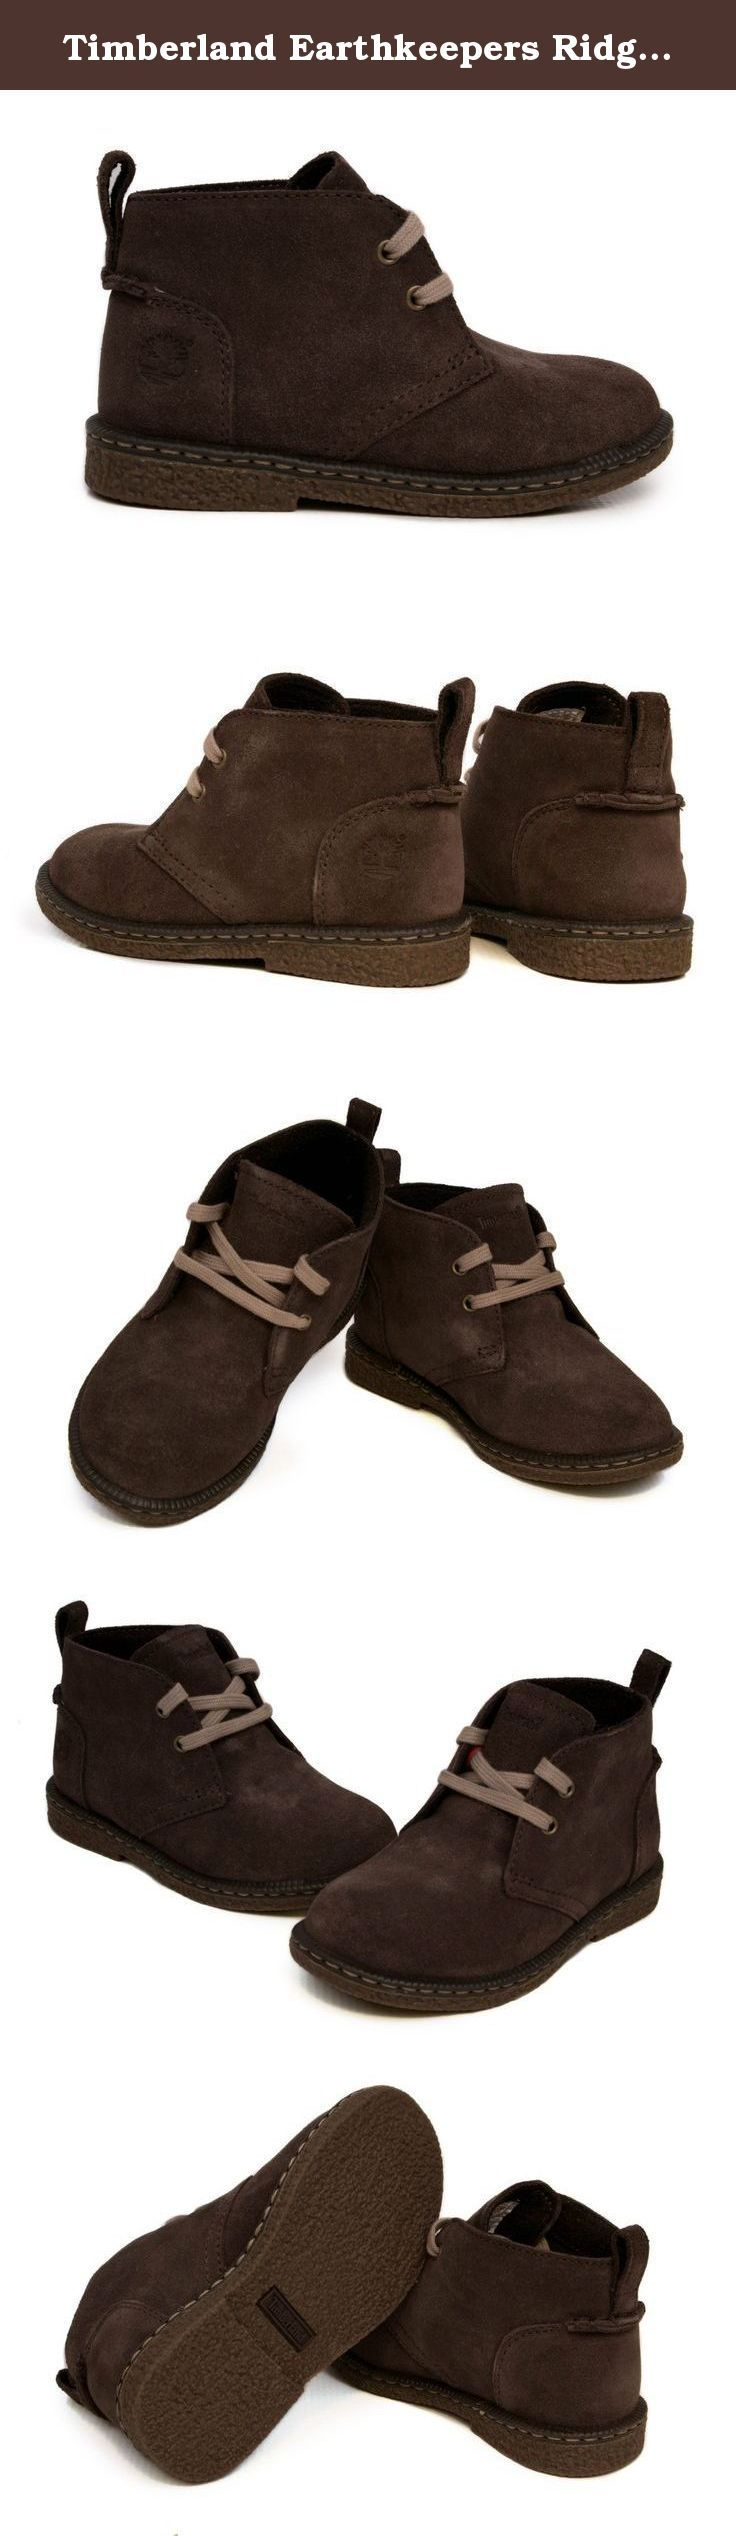 "Timberland Earthkeepers Ridgefield Suede Chukka (Toddler/Little Kid/Big Kid),Dark Brown,5 M US Toddler. Recycled PET mesh lining for comfort. Leather covered footbed for comfort. Ortholite footbed for cushioning. Durable 15% recyceled outdole. ""Does it Fit?"" sockliner."